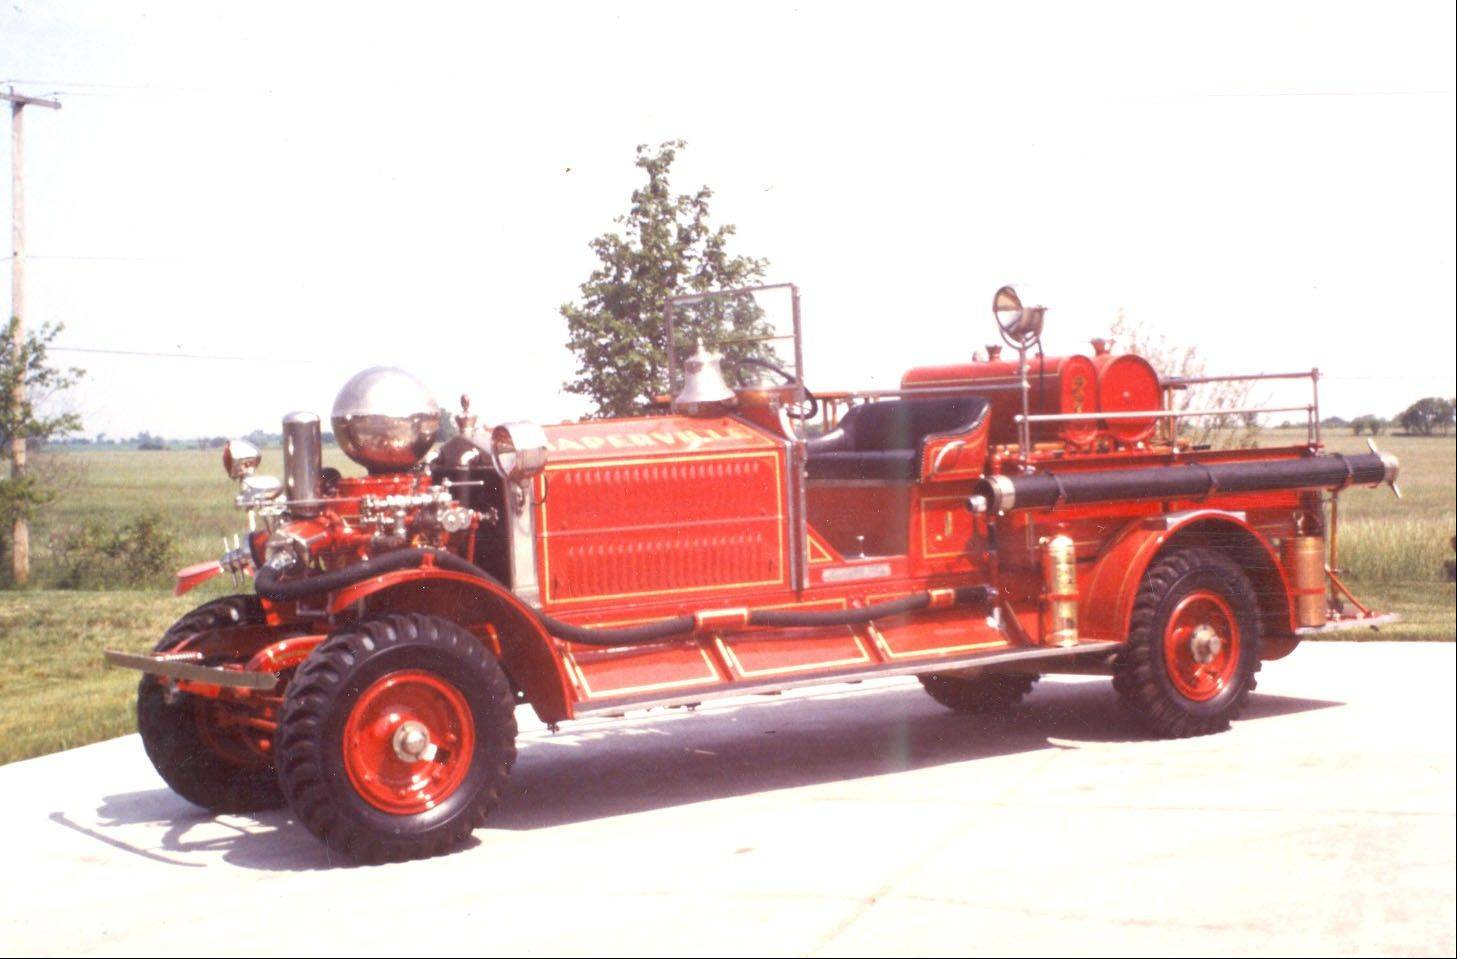 Naperville Hose Company No. 1 cares for this 1924 Ahrens-Fox fire pumper.